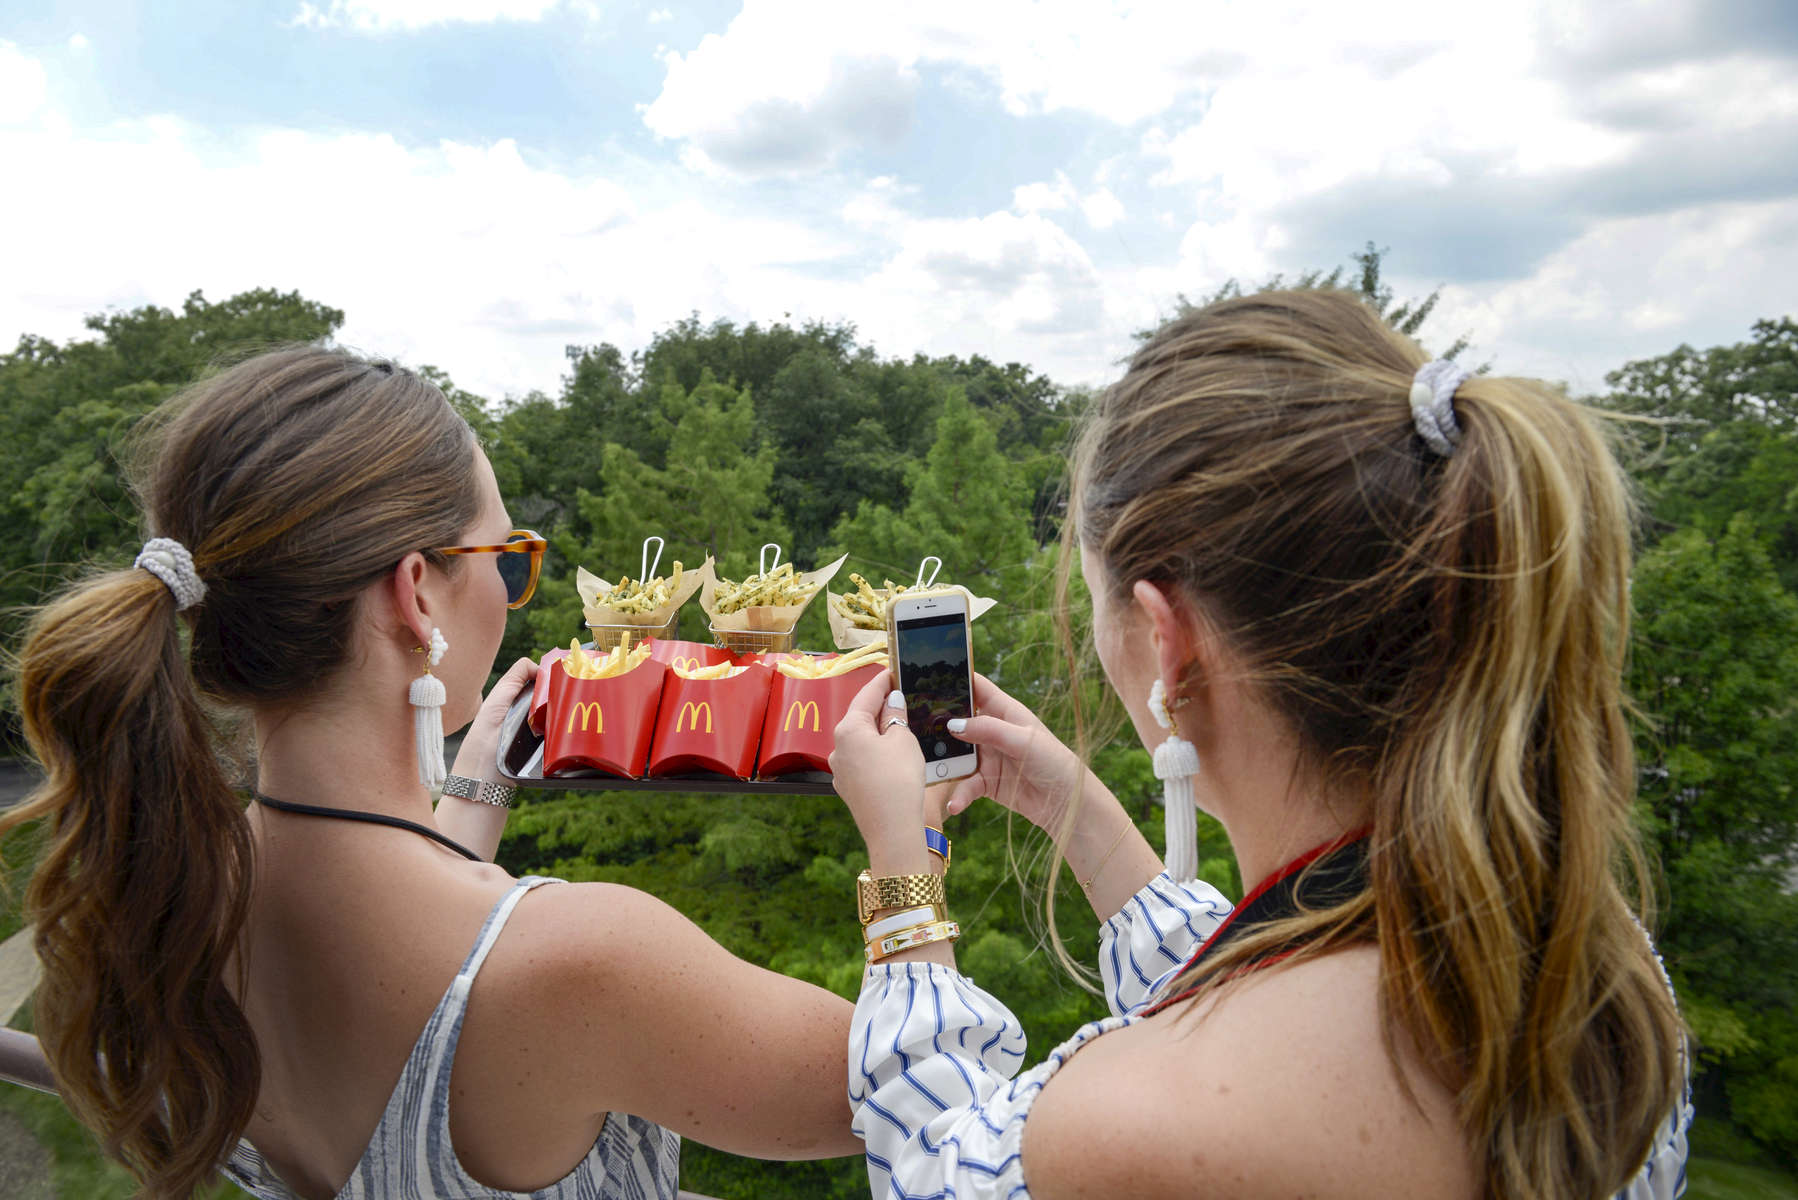 Carolyn Niemann, left, and her sister Meg Niemann of @foodintheair snap a picture of McDonald's World Famous Fries next to Gilroy Garlic Fries at a food event at McDonald's headquarters on Monday, Aug. 1, 2016, in Oak Brook, Ill.(Alex Garcia/AP Images for McDonald's)